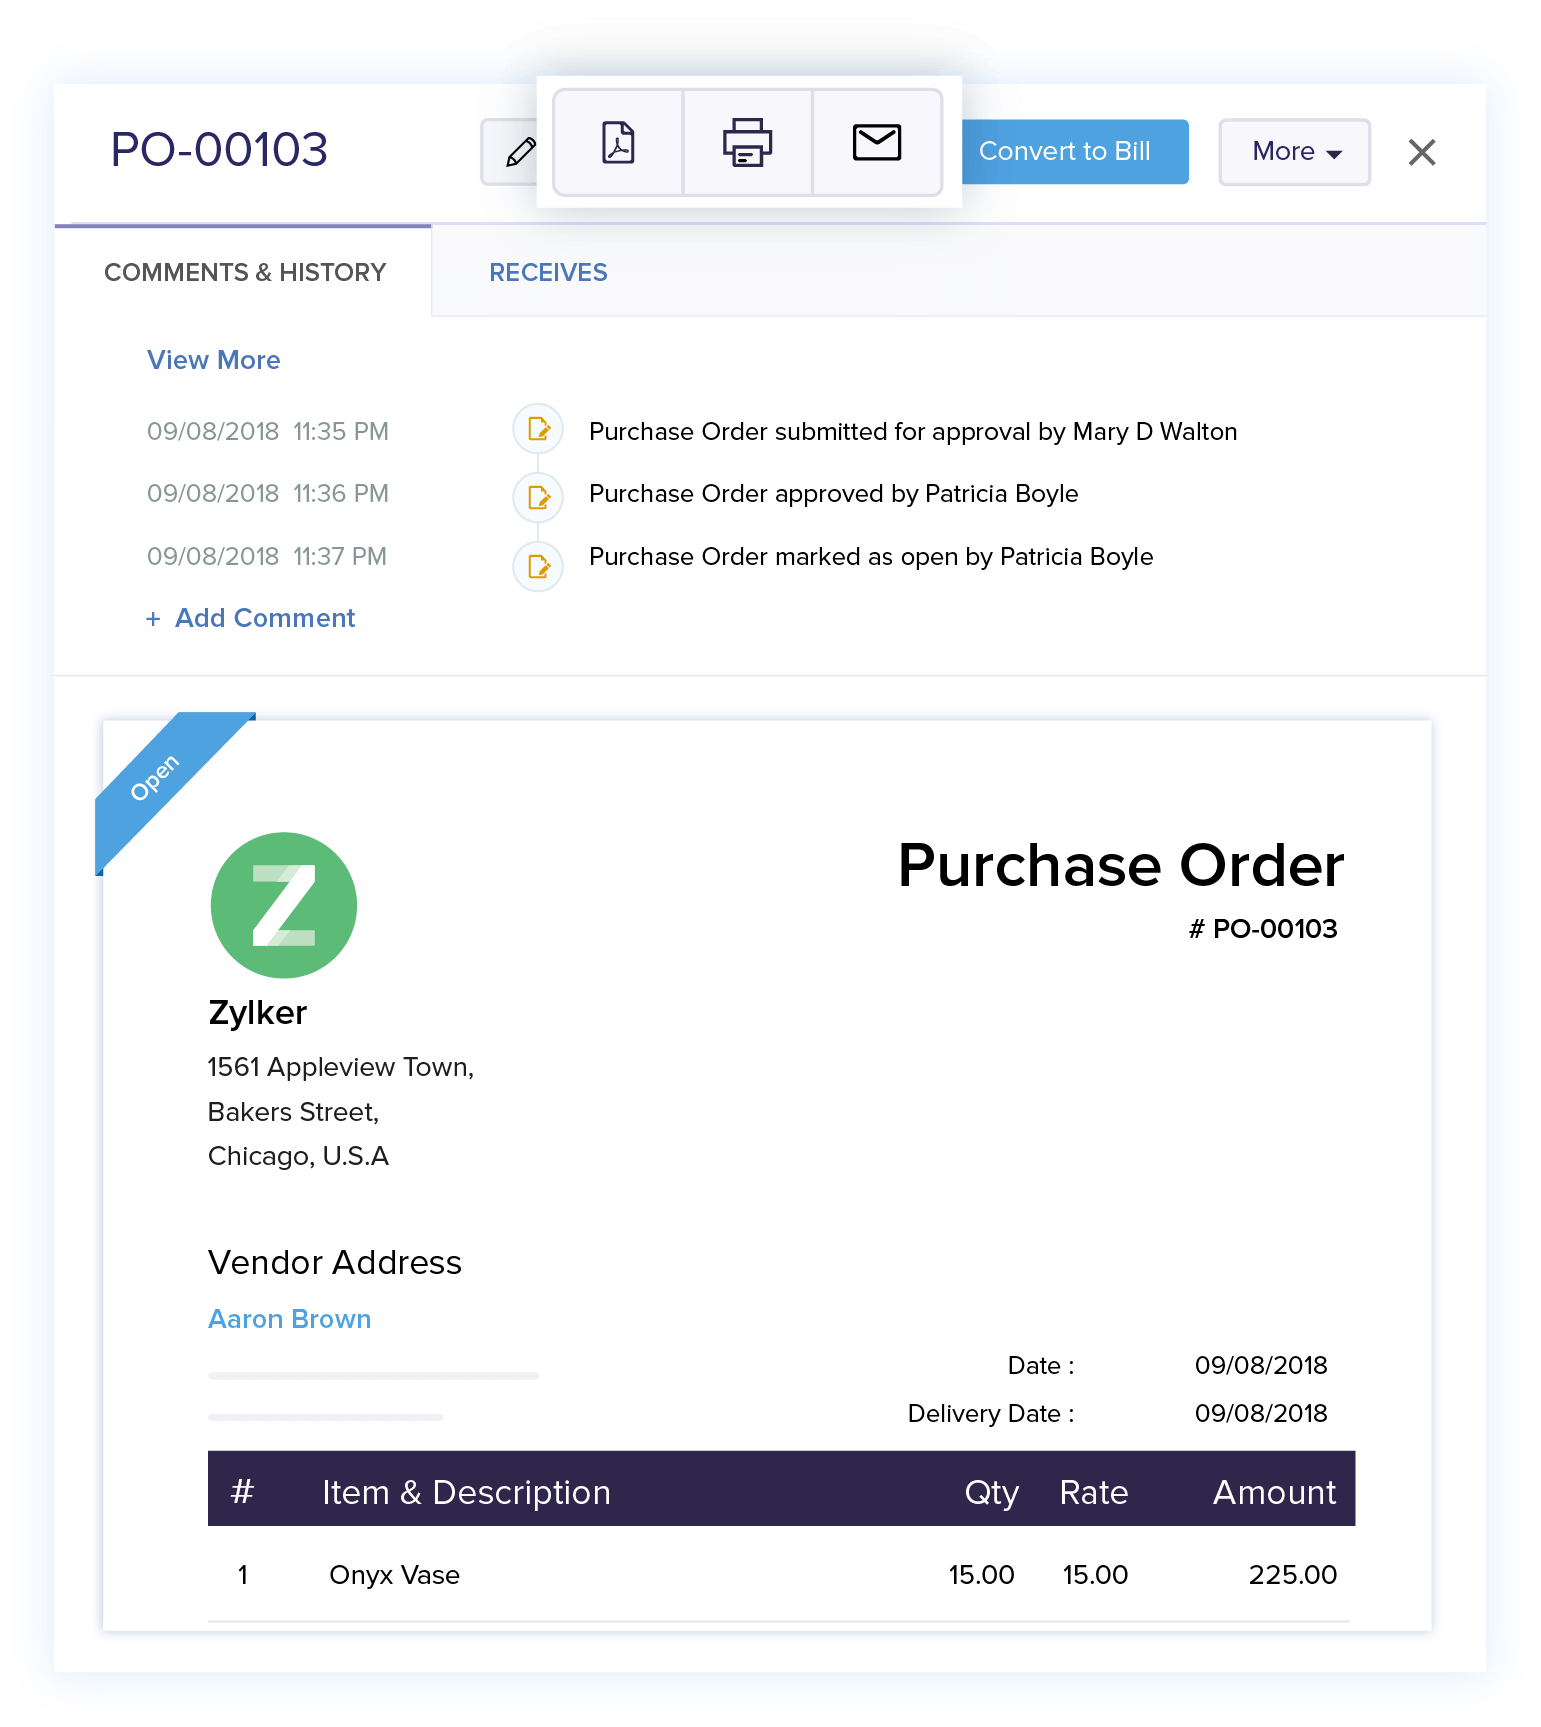 Share Purchase Orders - Online Purchase Order Management | Zoho Books